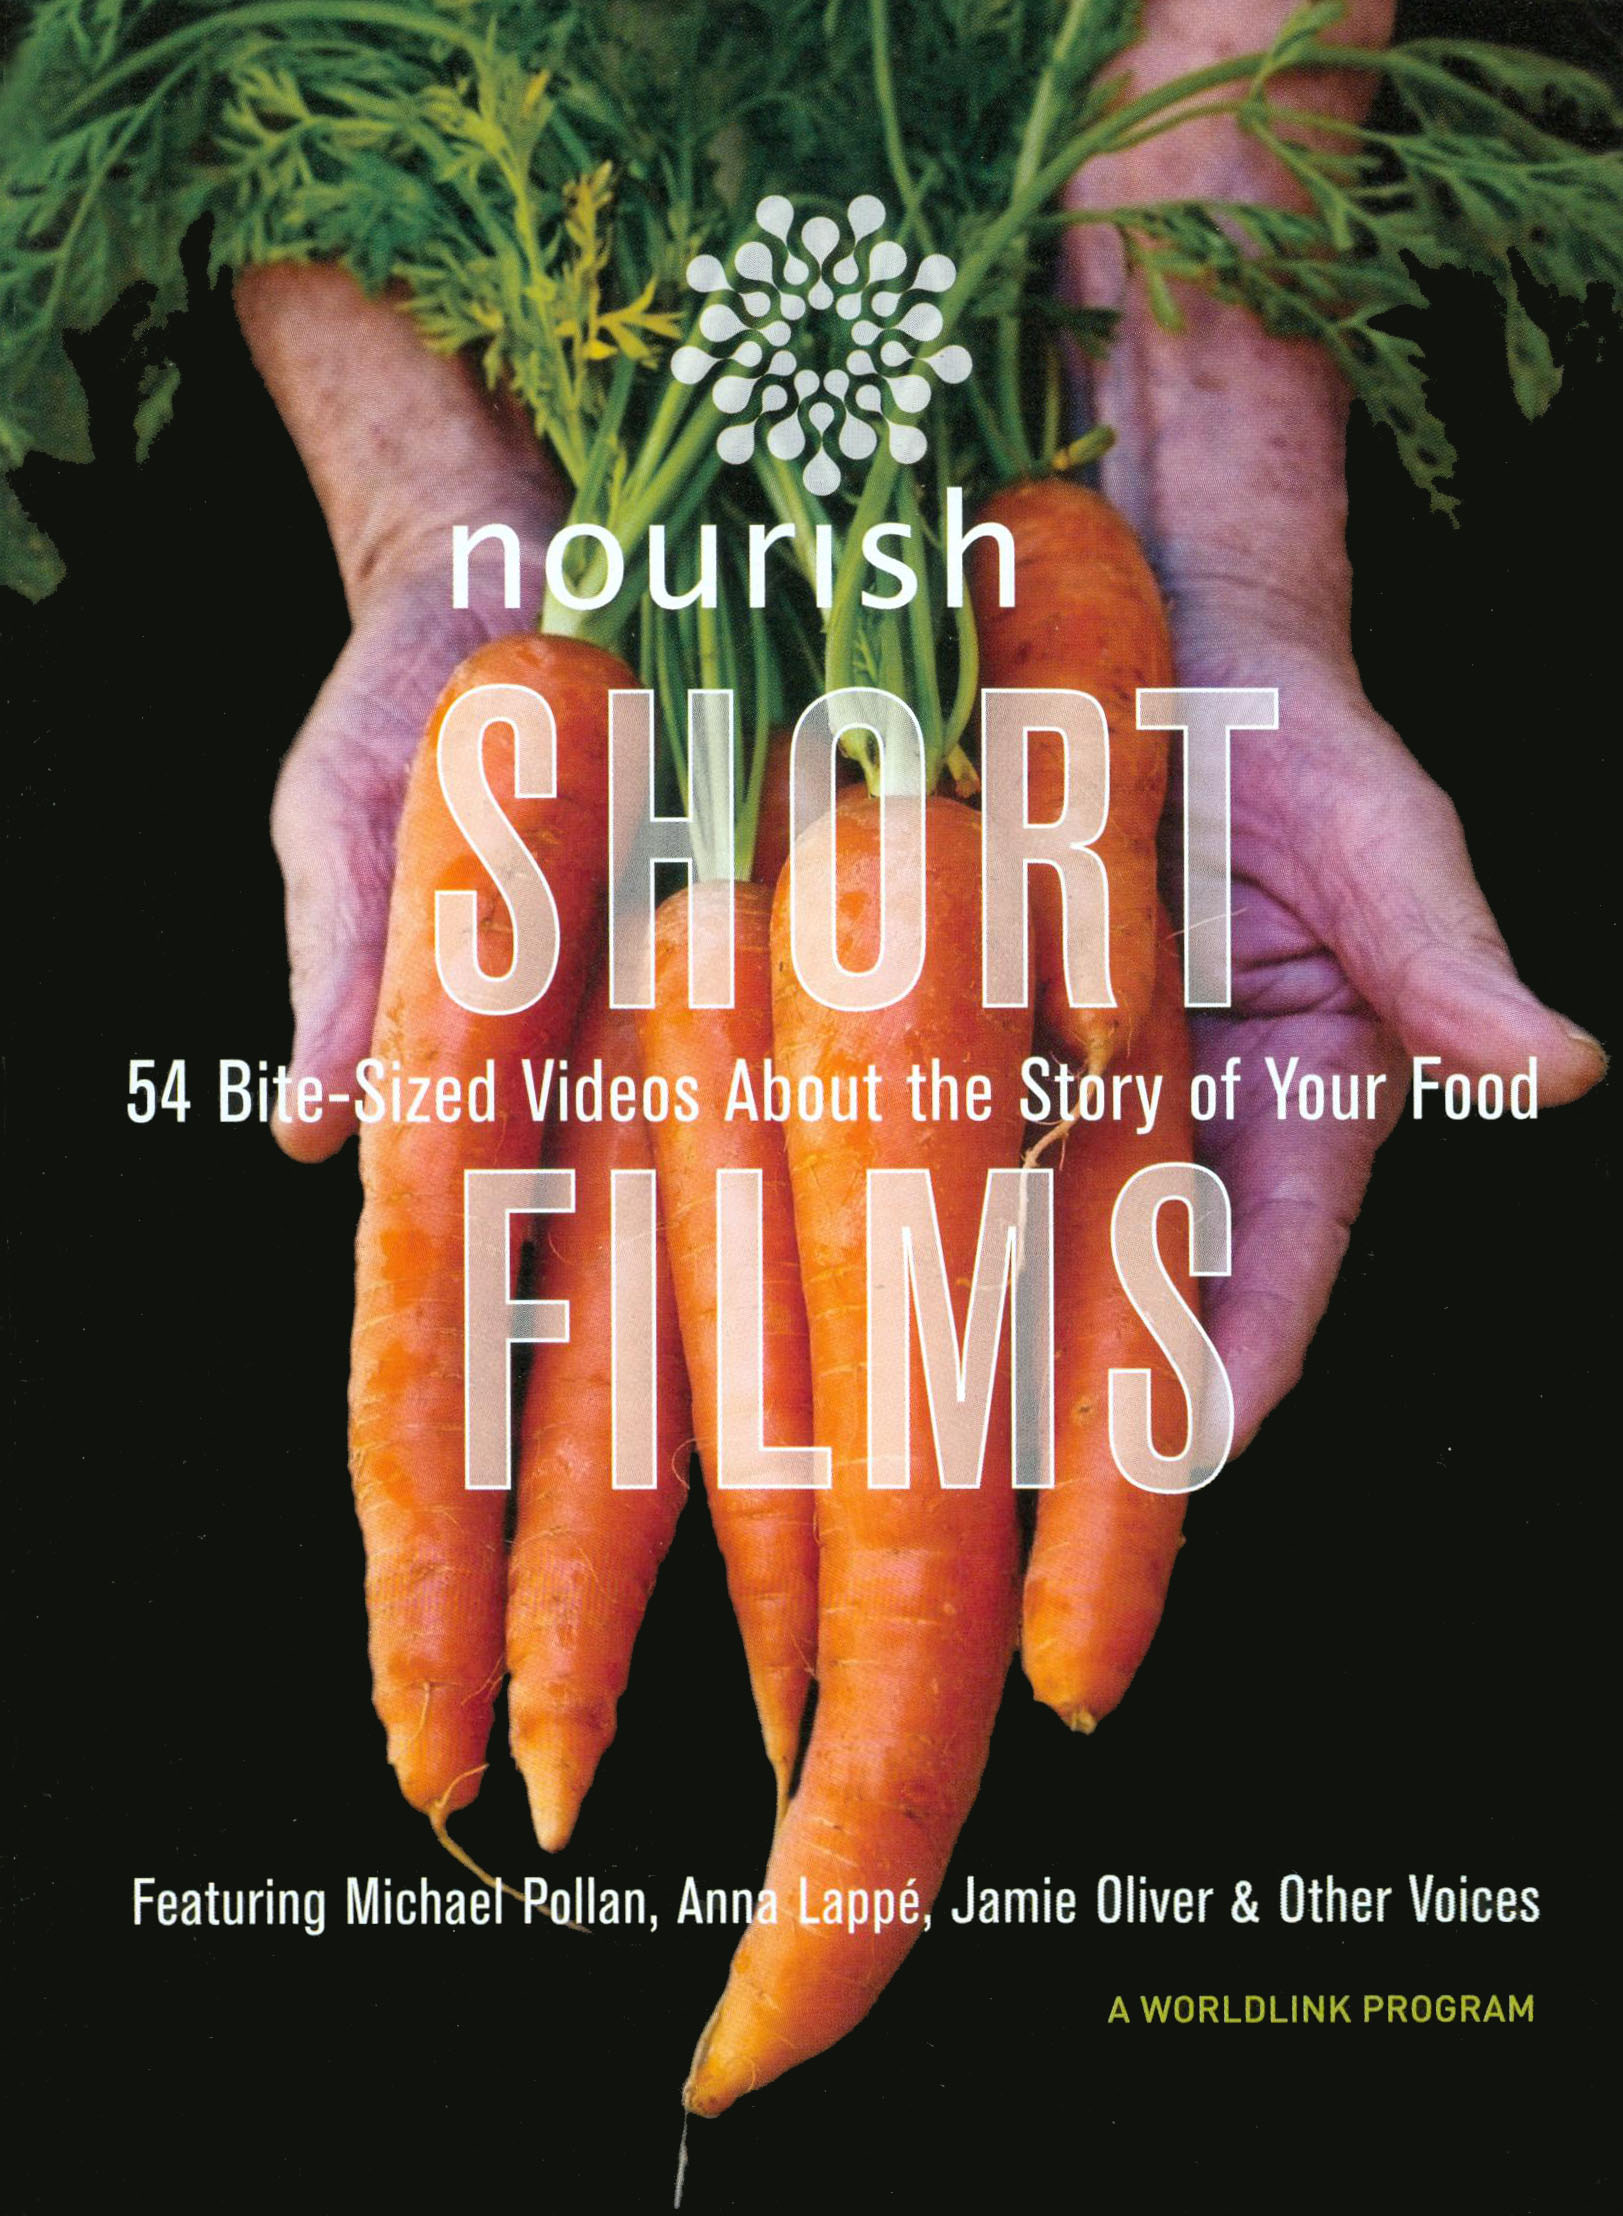 Nourish: Short Films